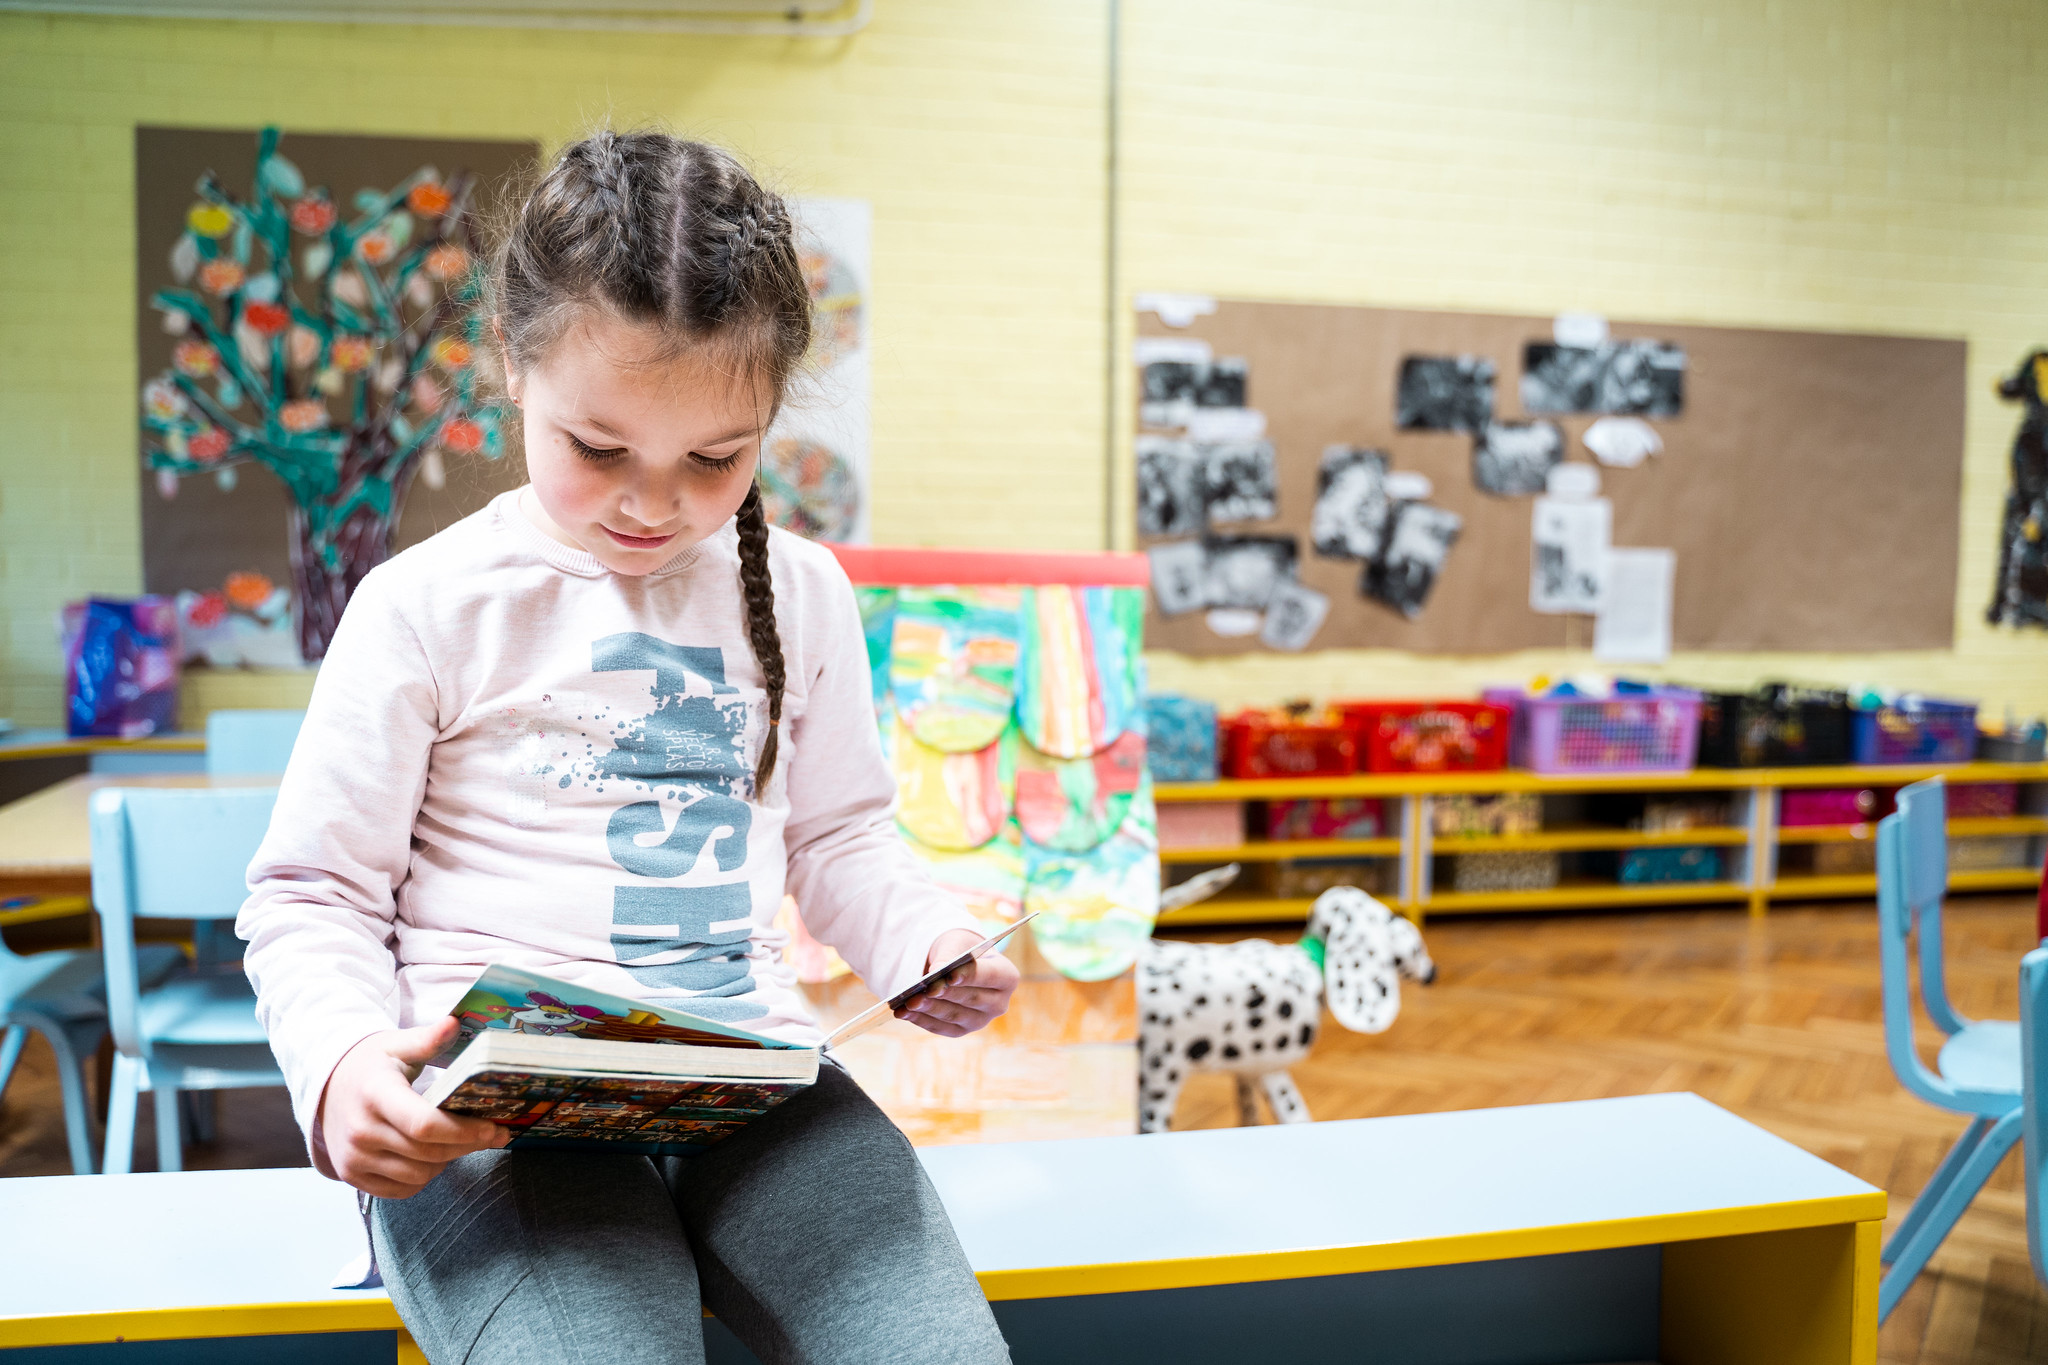 Development of memory, better concentration and focus, faster adaptation, etc. There are many brain benefits of learning a second language at an early age.